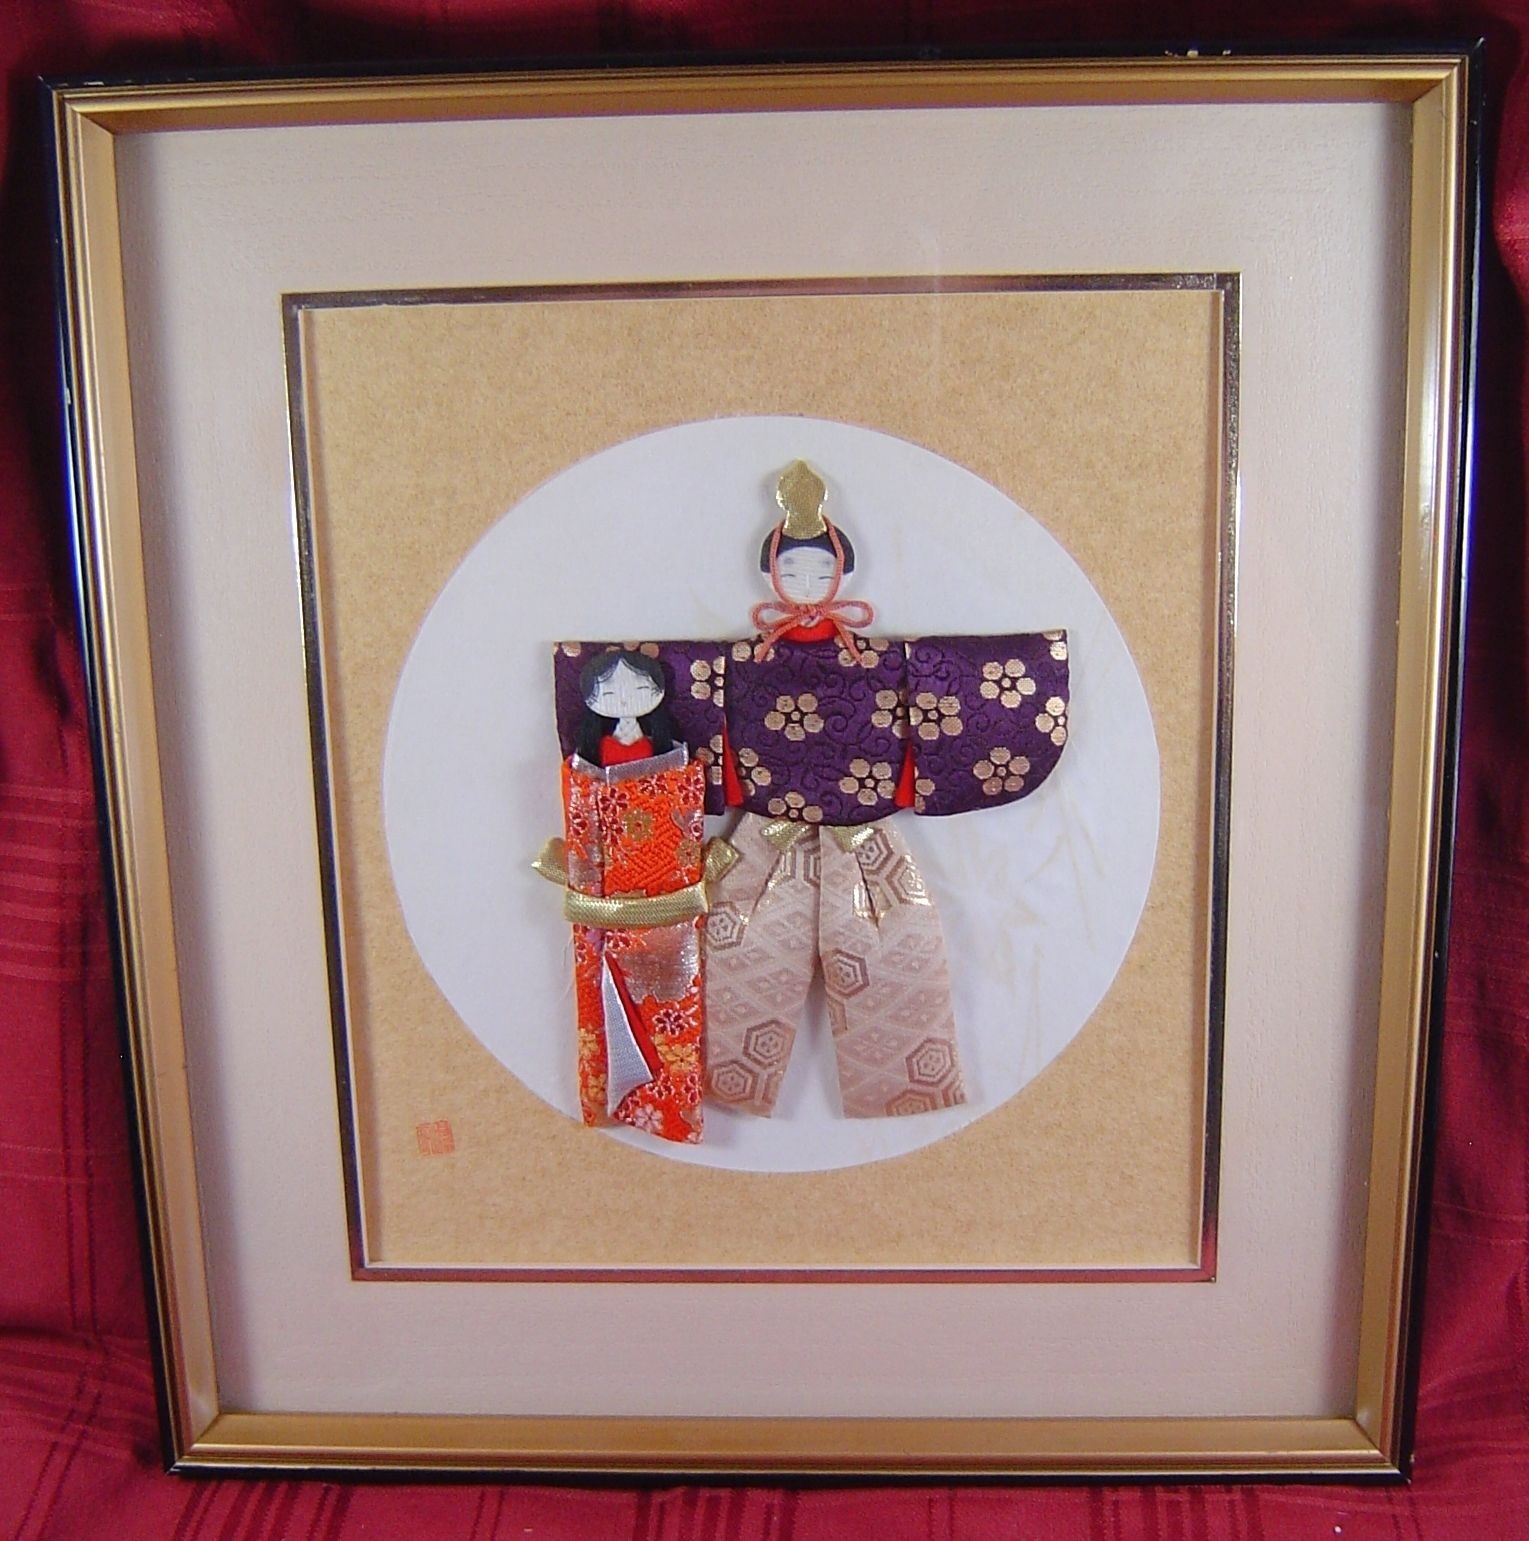 Vintage Japanese Framed Art Wall Hanging Geisha Kimonos 3-D Signed intended for Japanese Wall Art (Image 19 of 20)